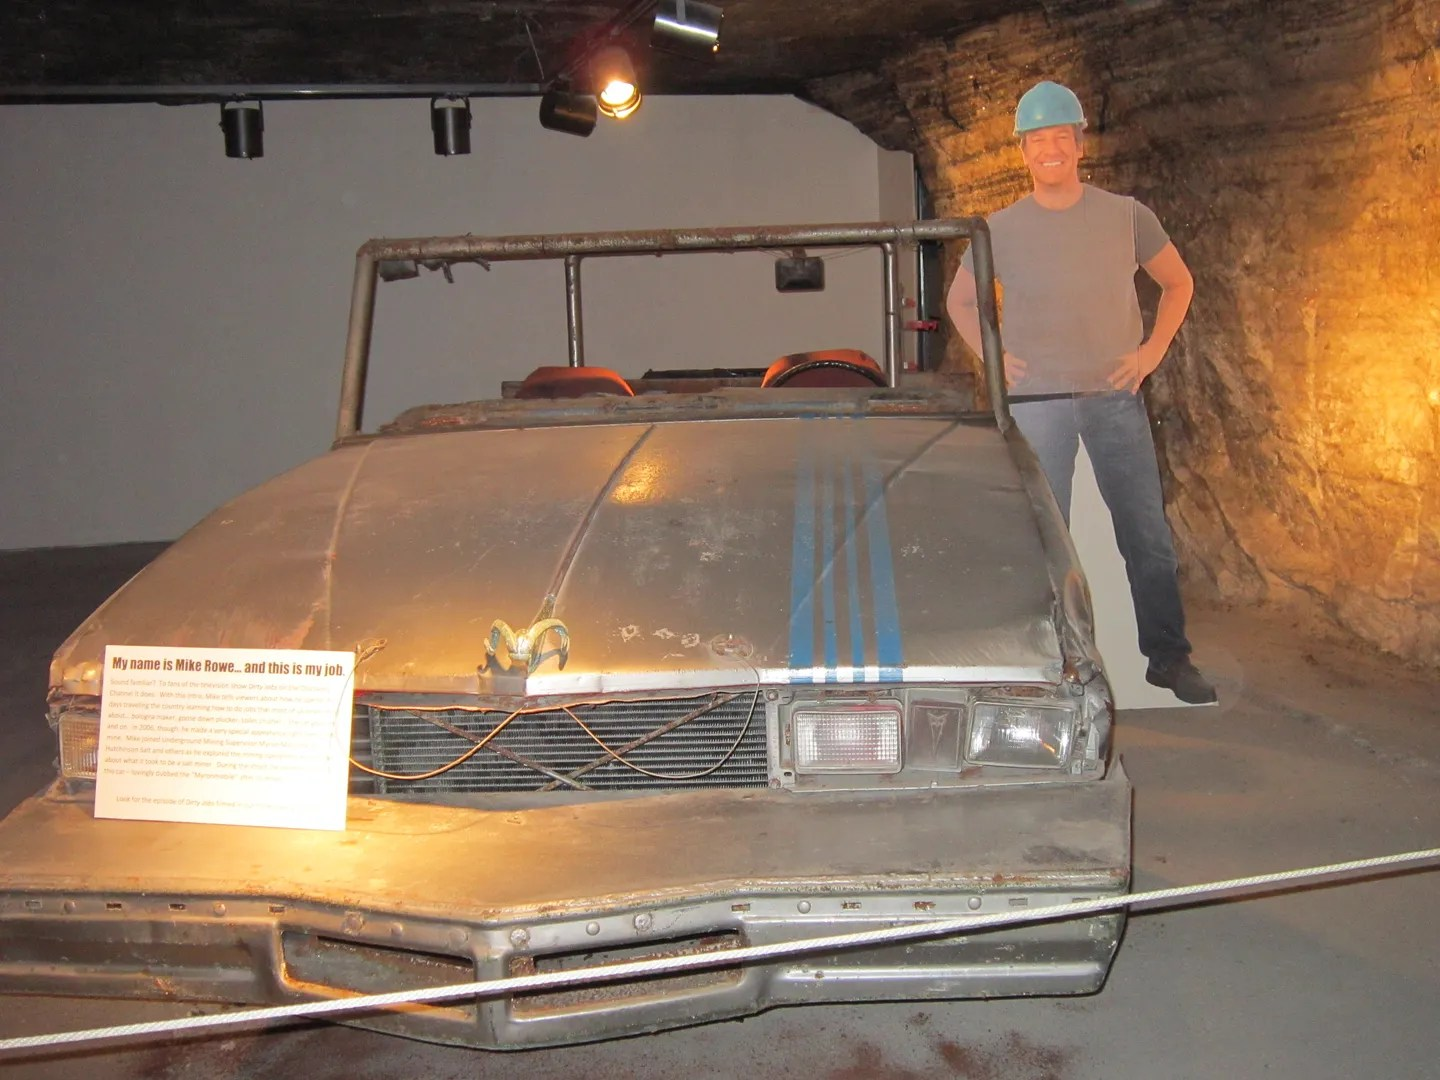 Mike Rowe, Dirty Jobs, Underground Salt Museum, Hutchinson, Kansas